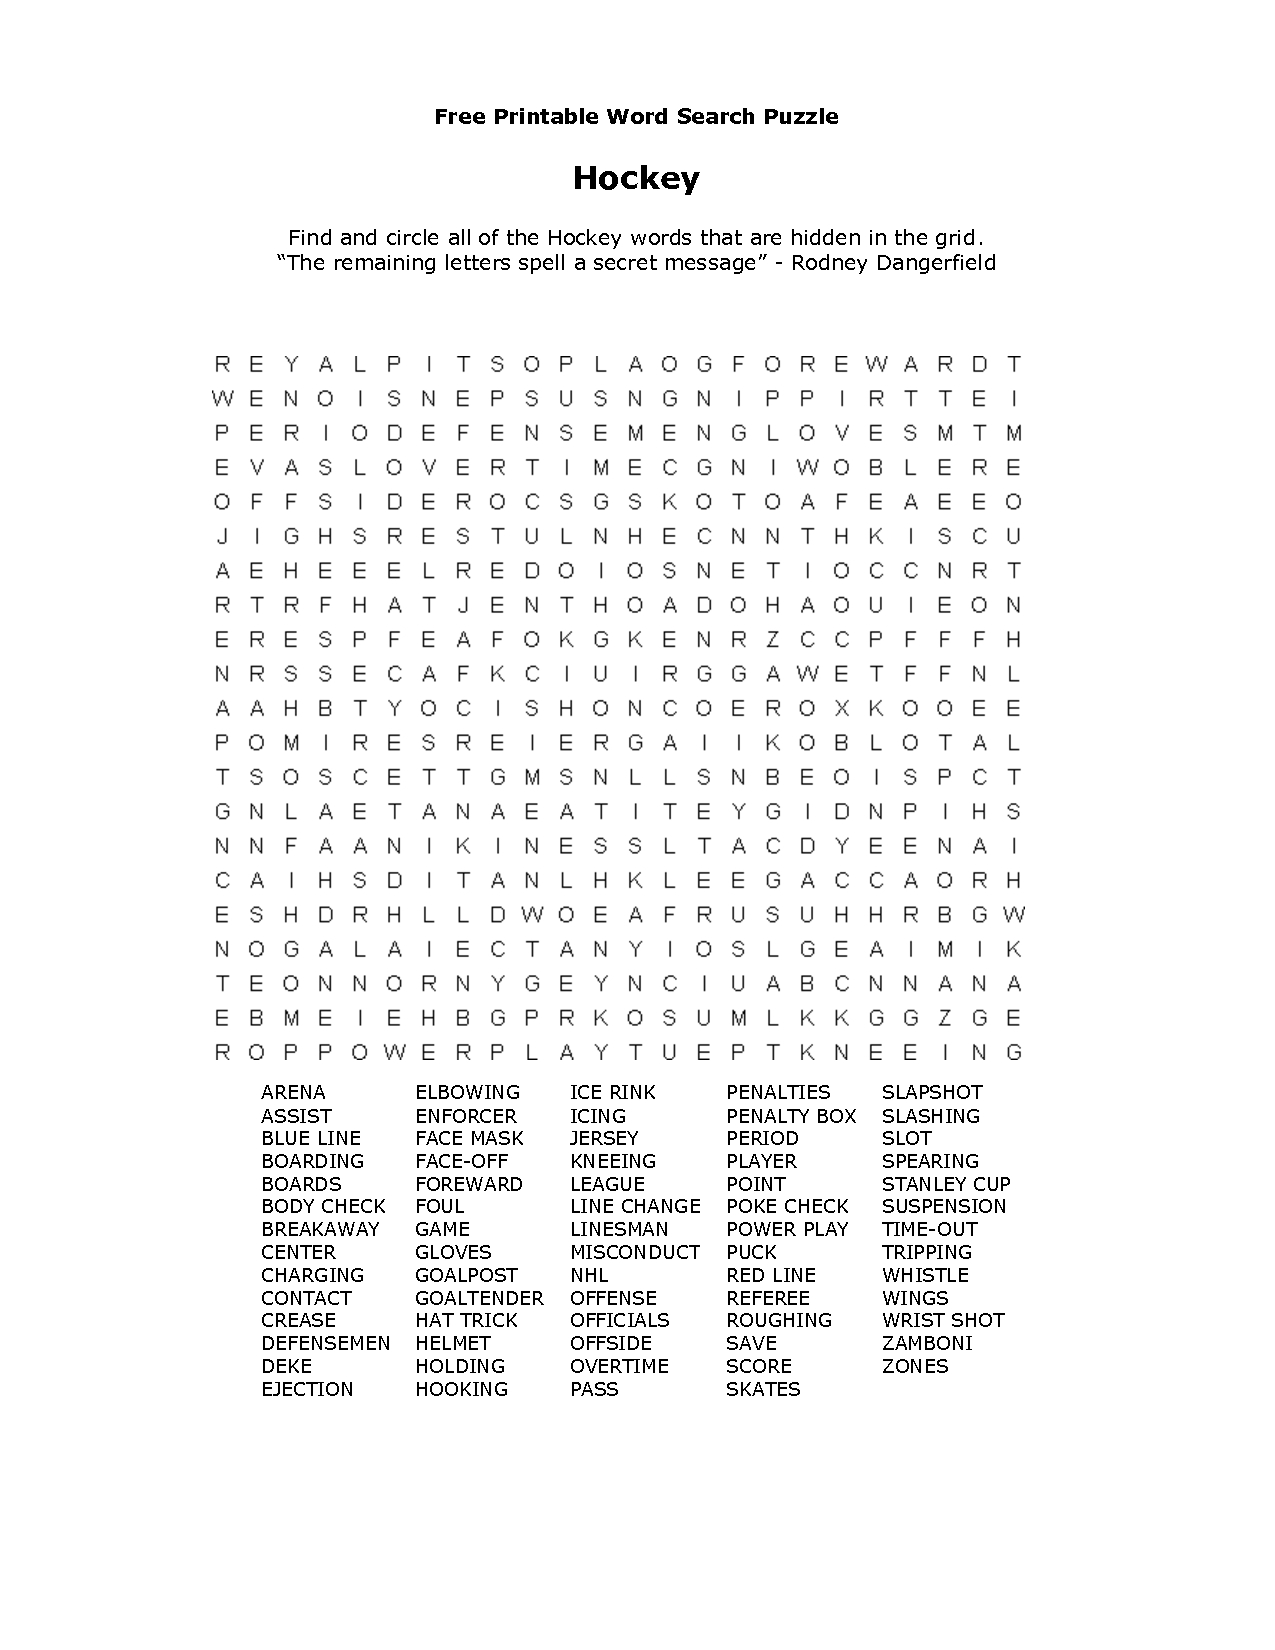 Free Printable Word Searches | Free Printable Word Searches